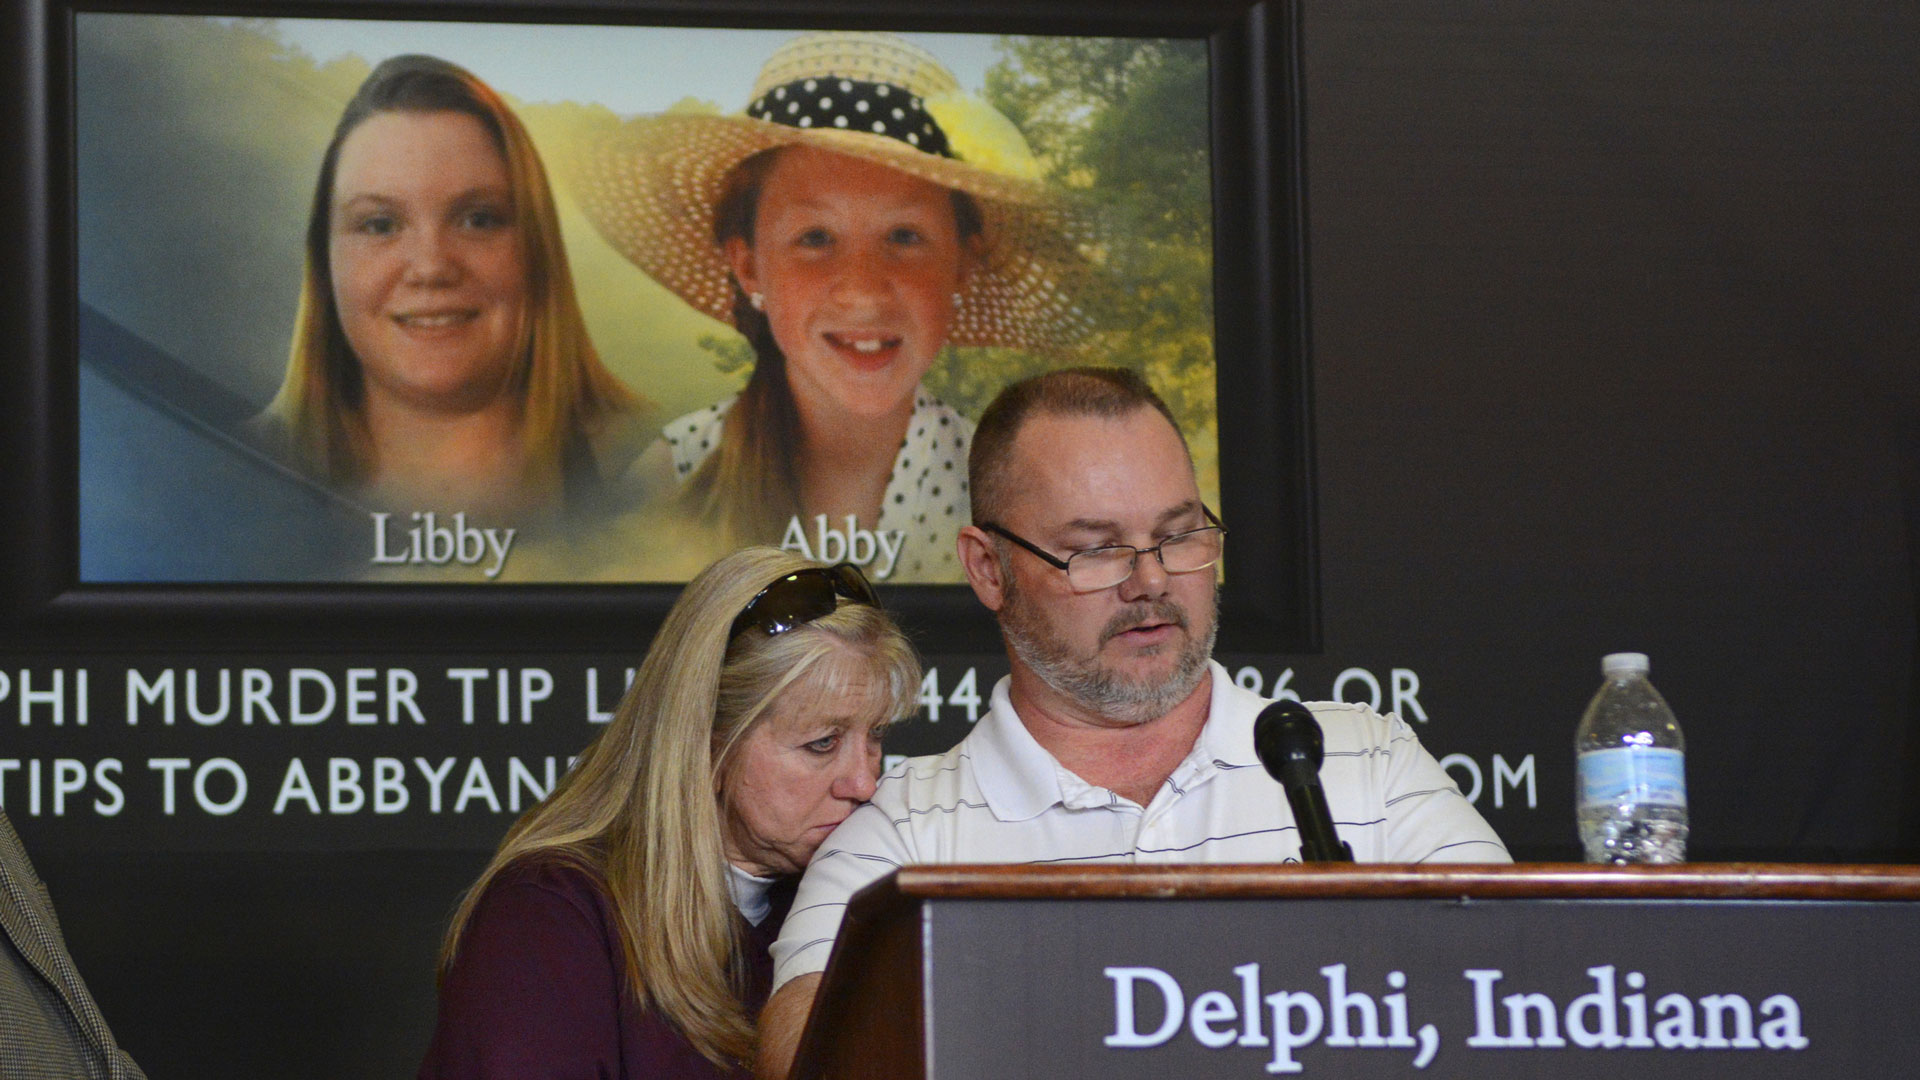 The Delphi Murders: Why Police Have Not Released Details on the Murders of Libby German and Abby Williams